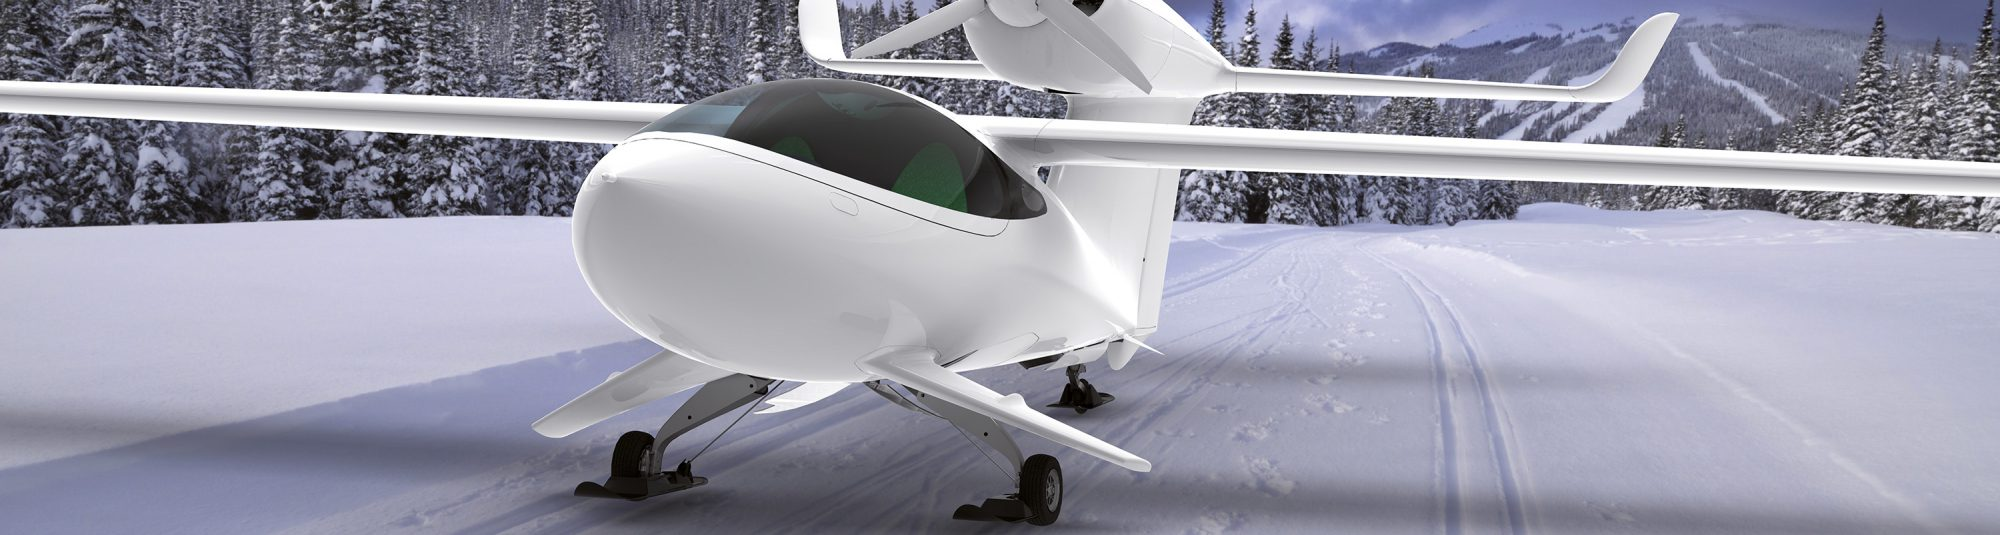 avion Akoya technologie skis-in sur la neige